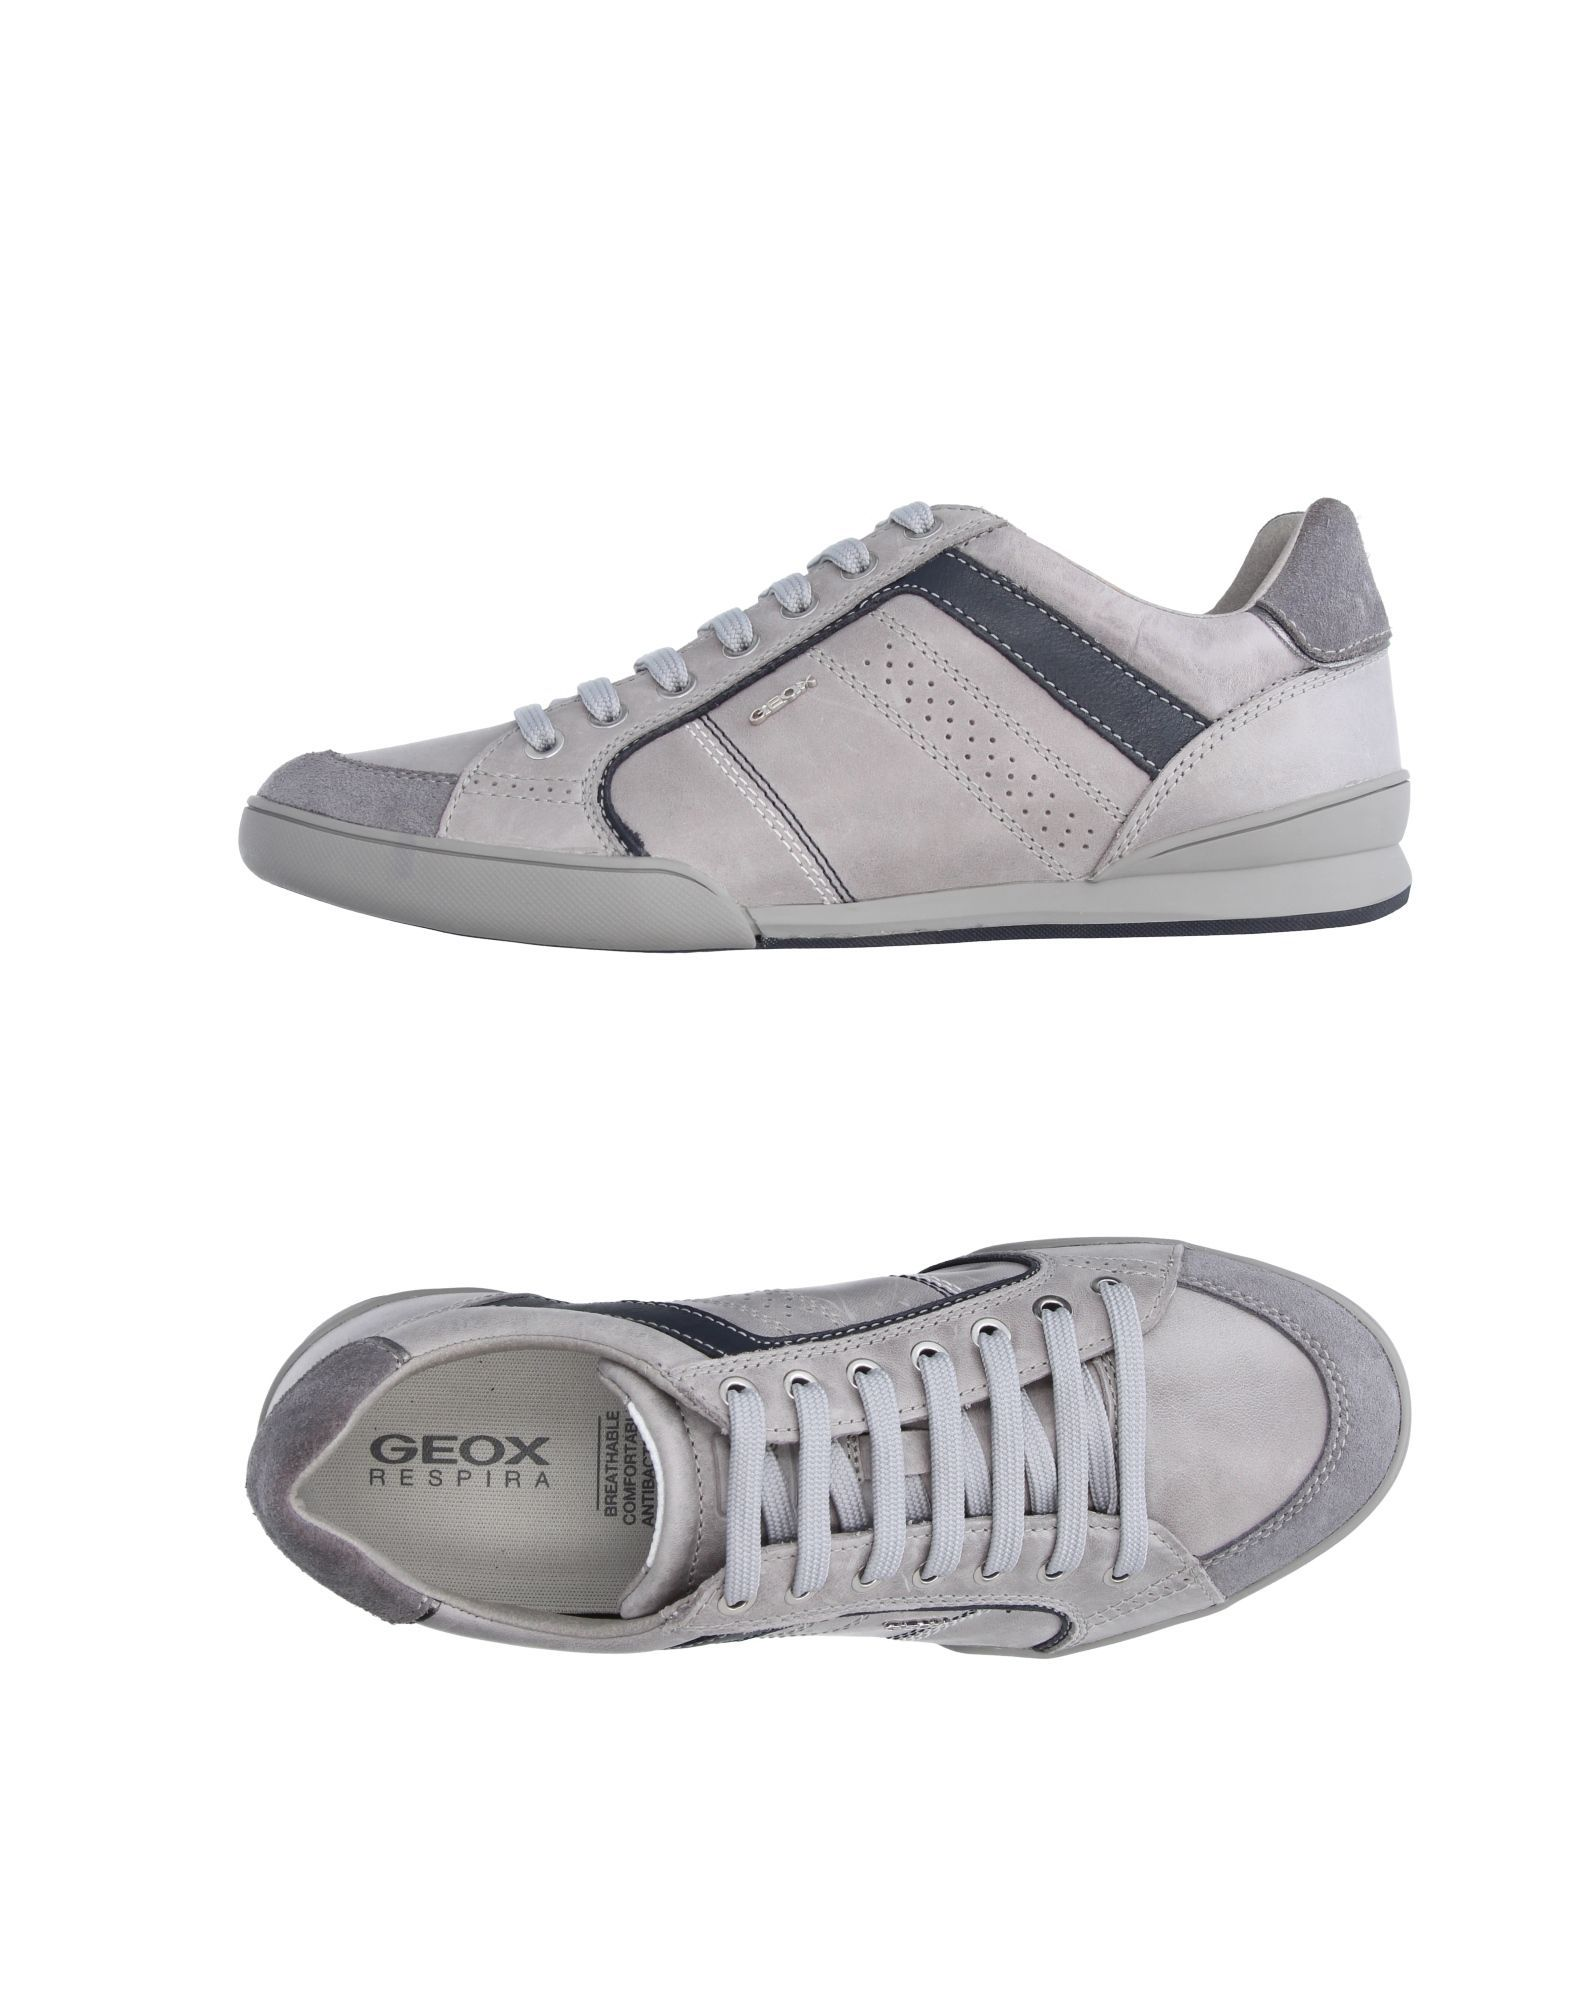 509f8c911577 GEOX SNEAKERS.  geox  shoes